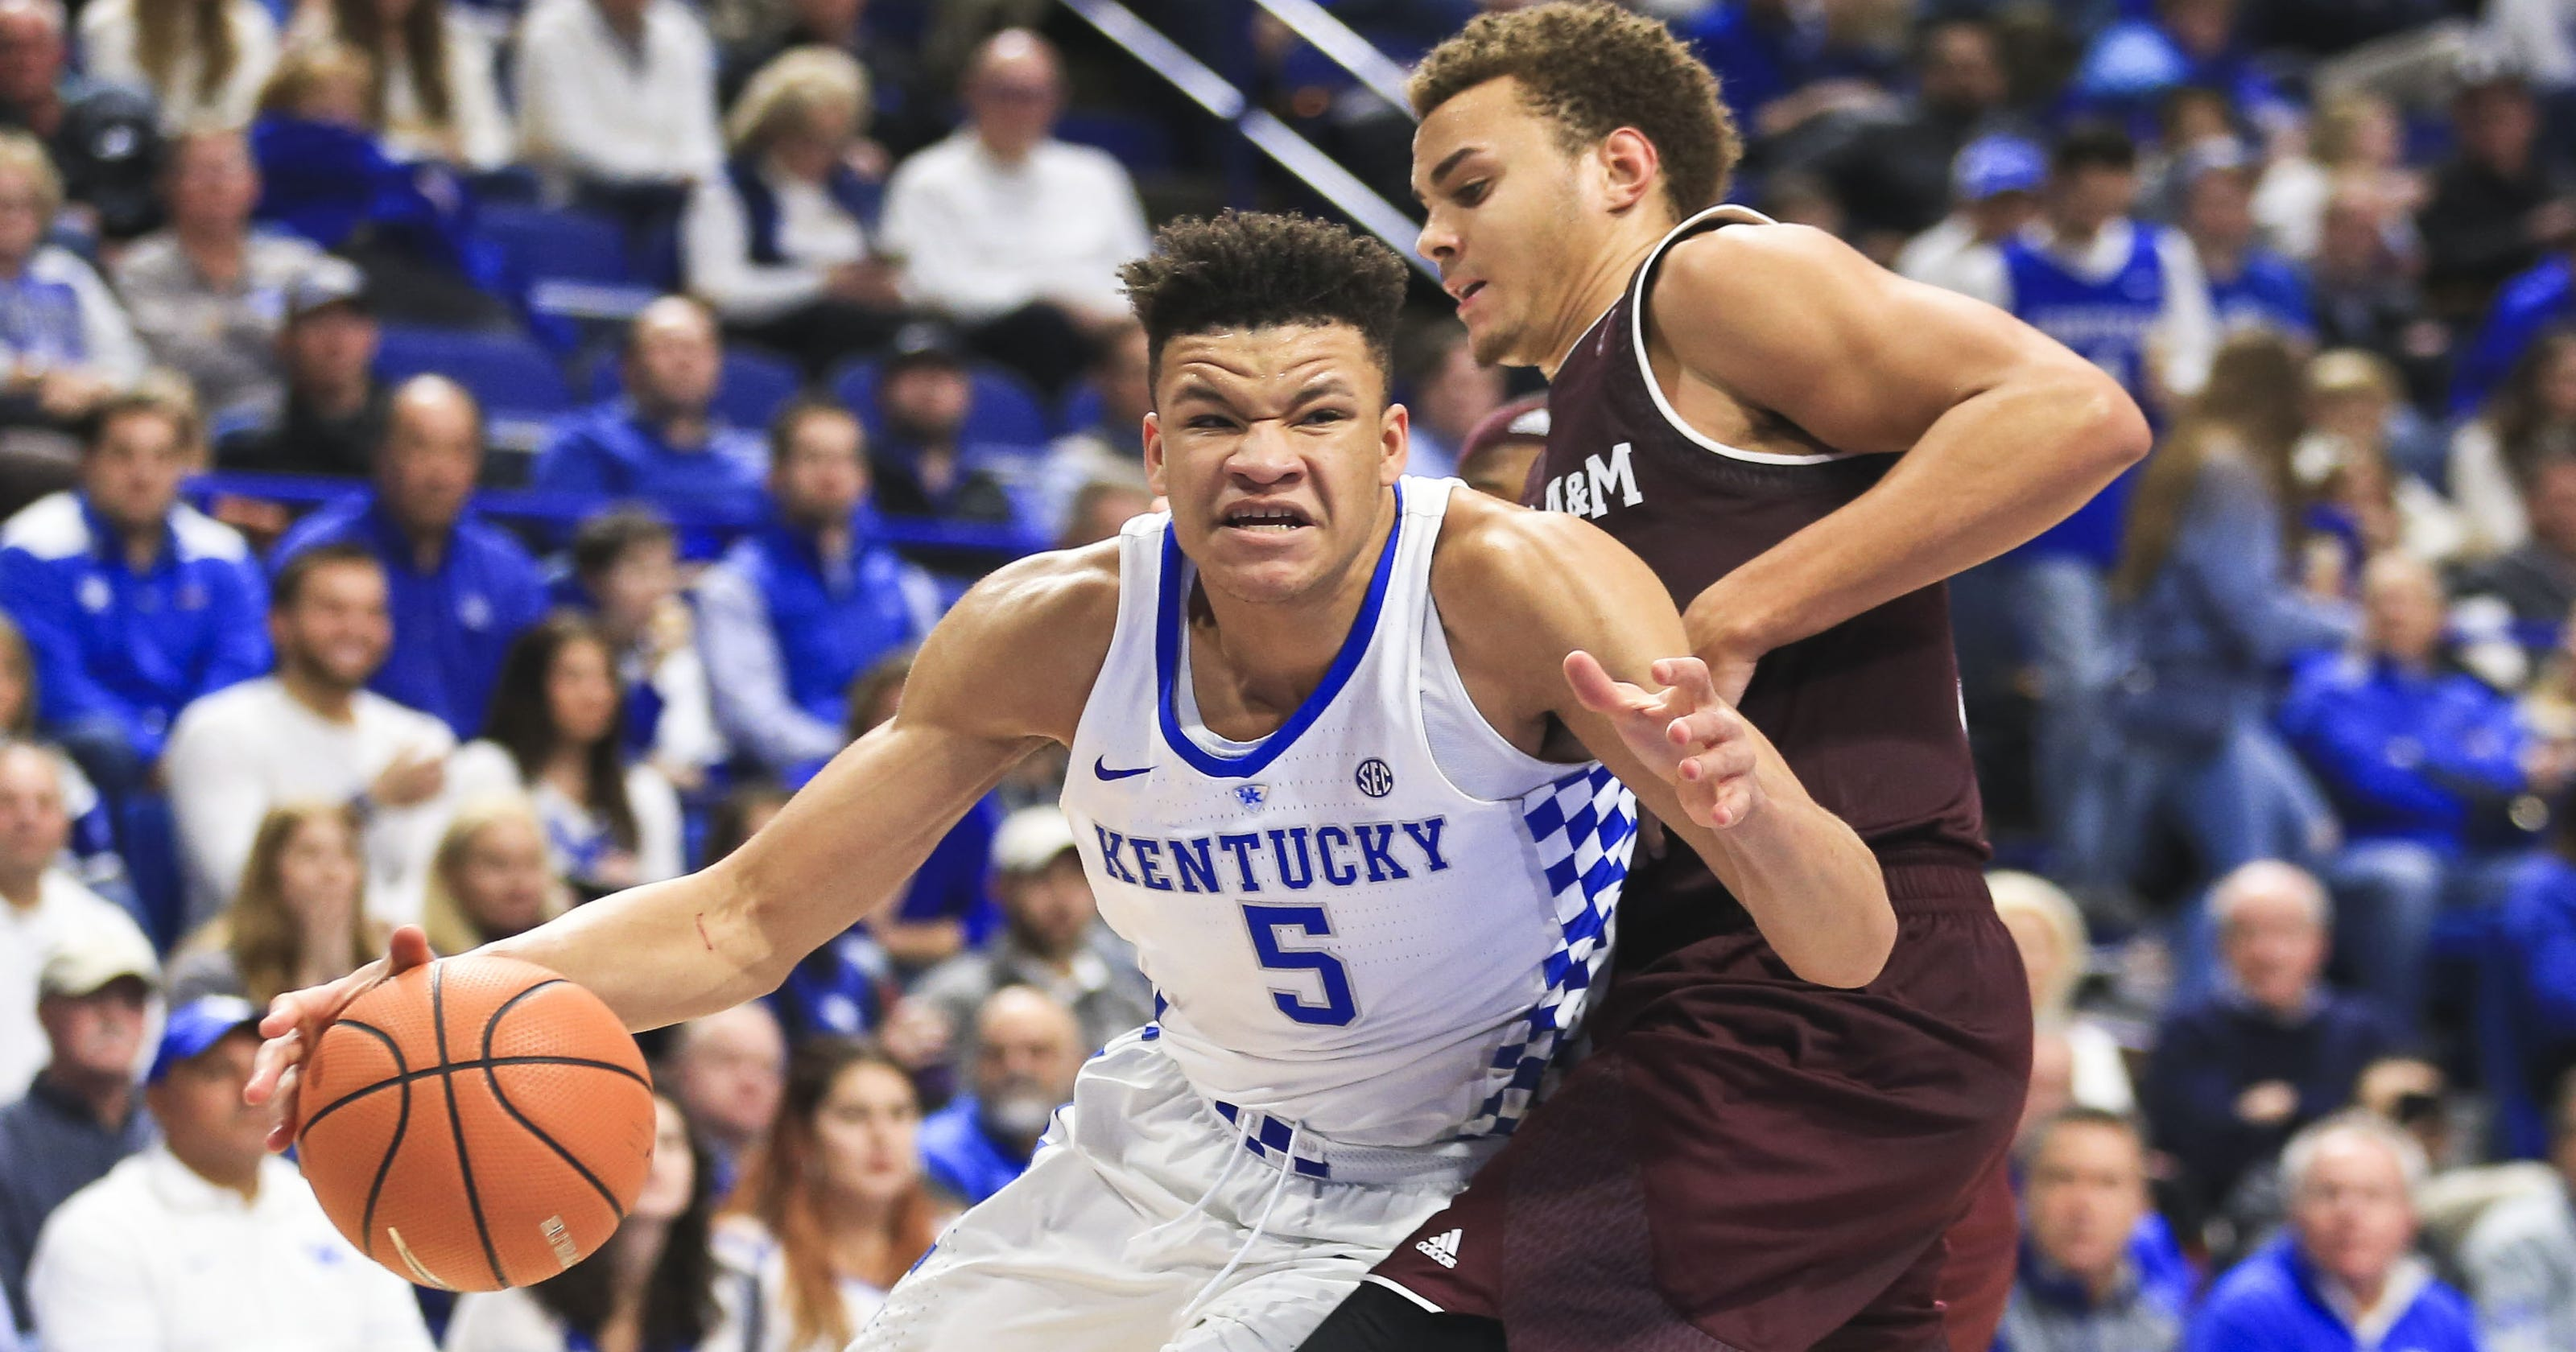 Kentucky basketball s Knox retains eligibility and his poise  d274bae20